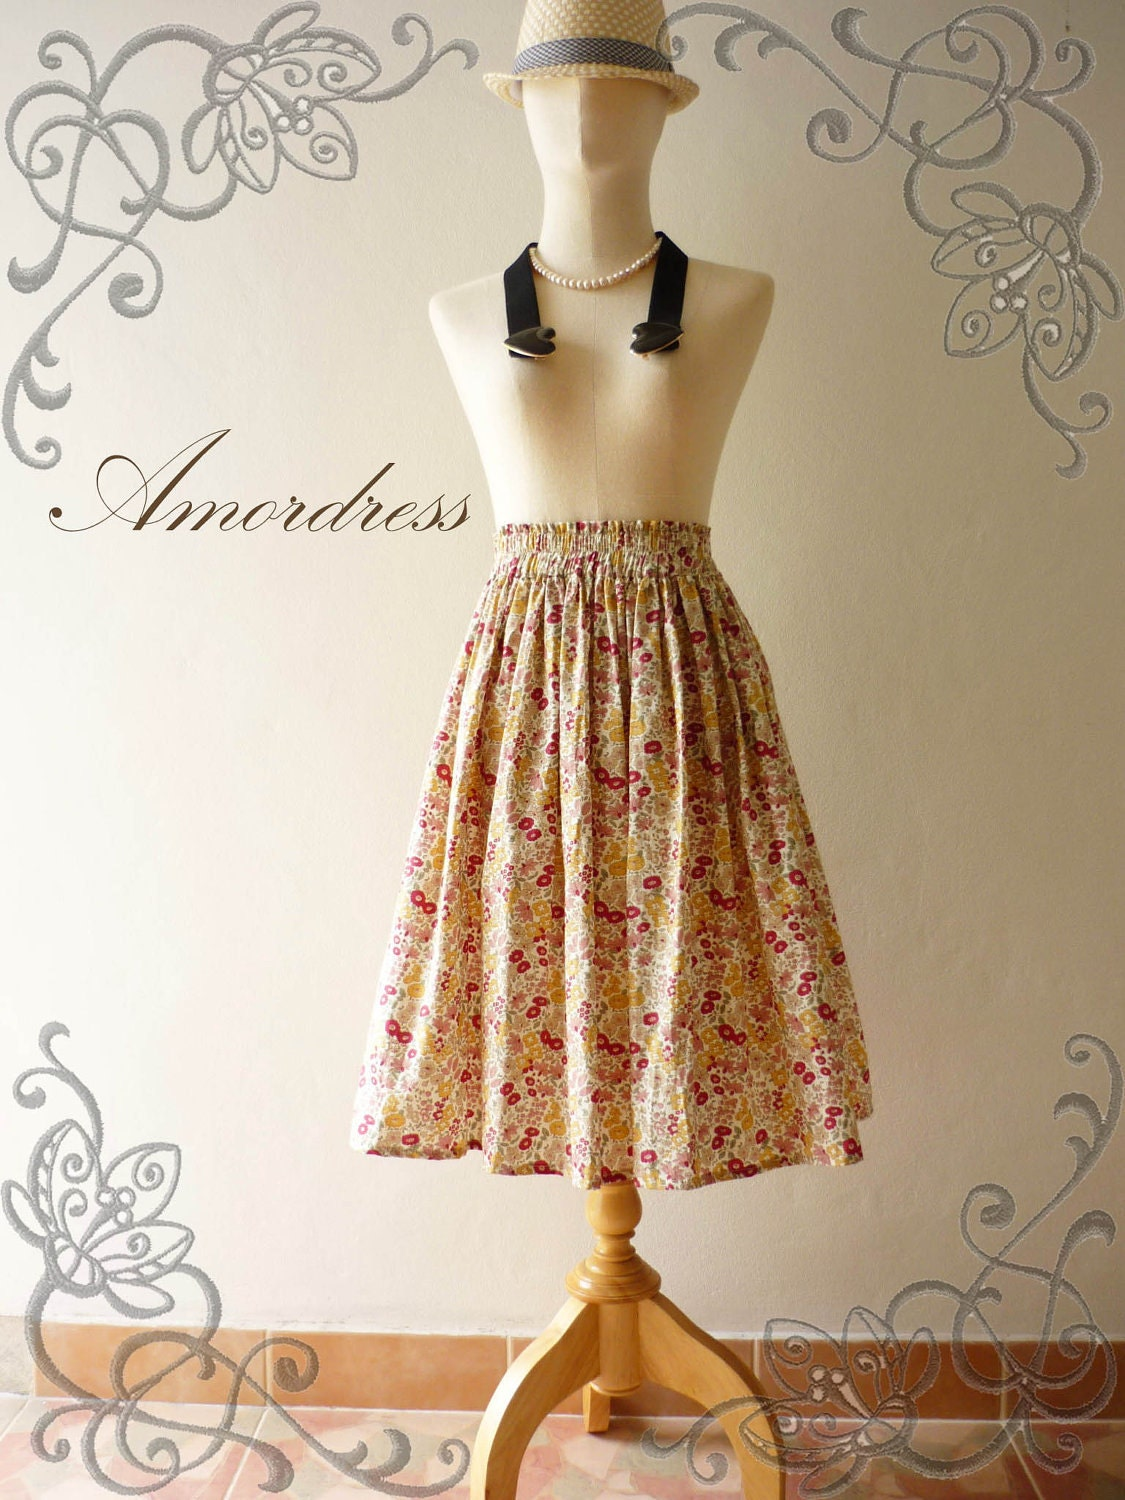 NEW for This wonderful Summer--Im a Princess SKIRT- Floral Wonderland- Vintage Style Handmade Cotton Skirt Mix and Match (Longer Length) - Amordress